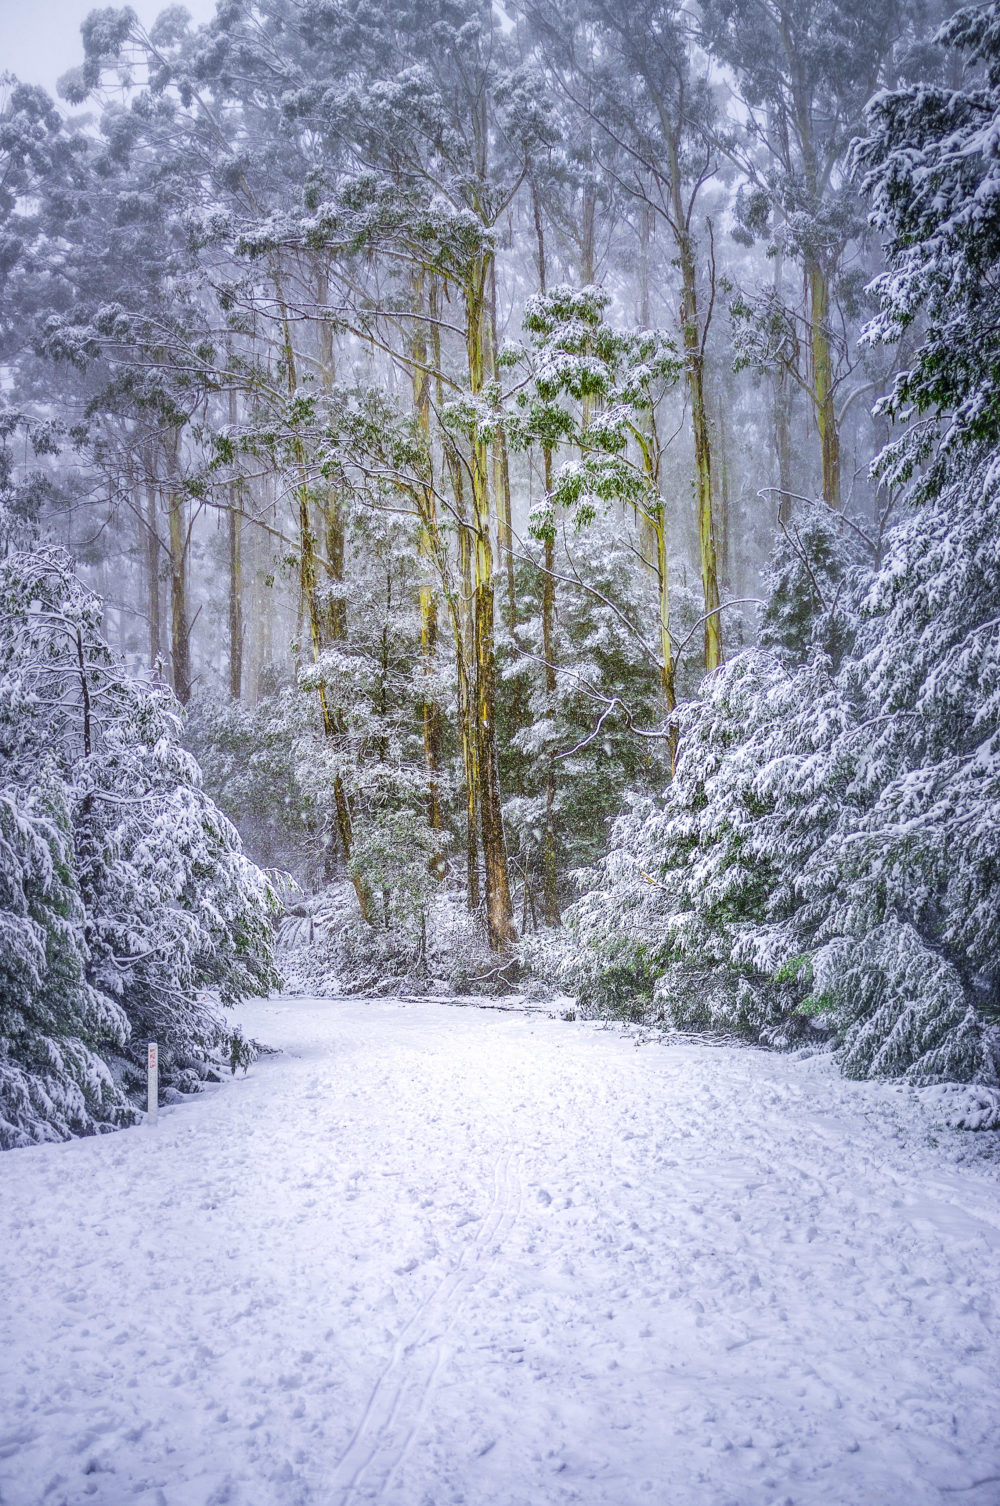 Road covered with snow in eucalyptus forest in Australia